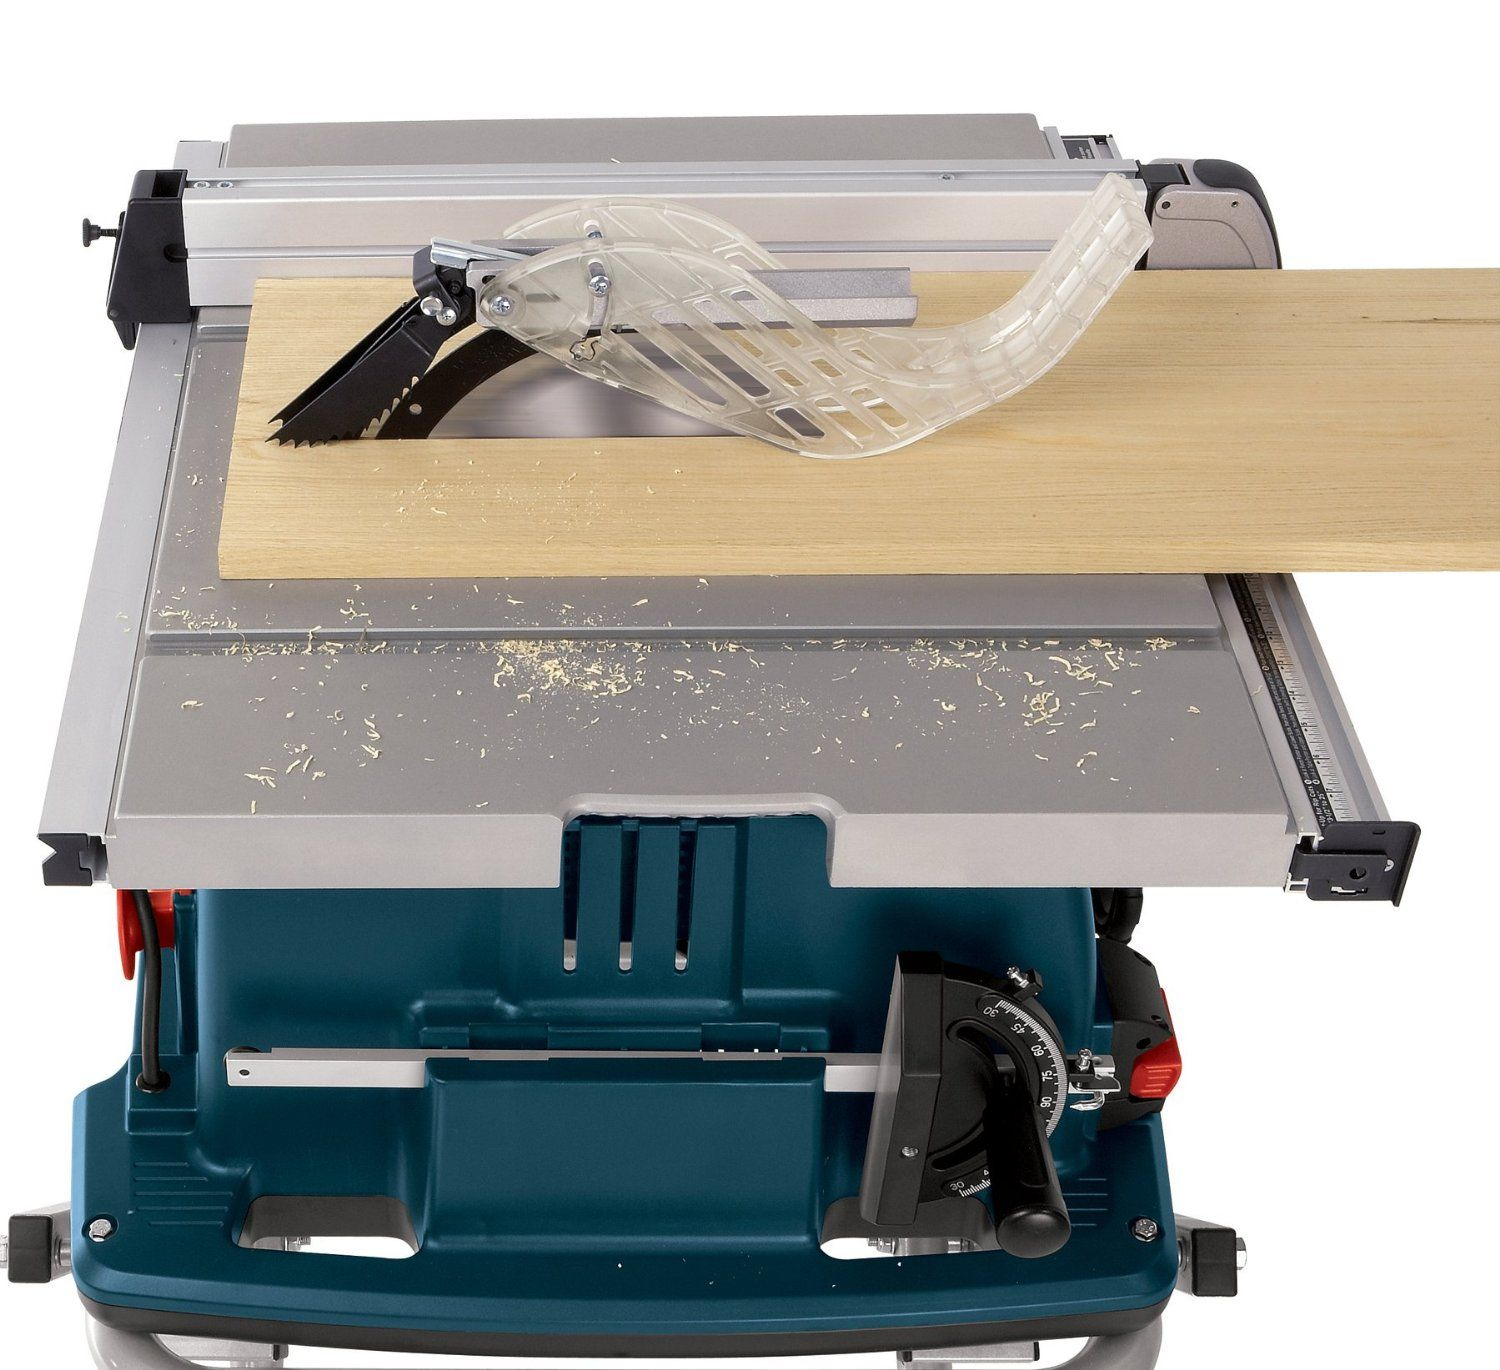 A dull blade would hinder accuracy and performance of a table saw a dull blade would hinder accuracy and performance of a table saw and may cause adjustment greentooth Image collections